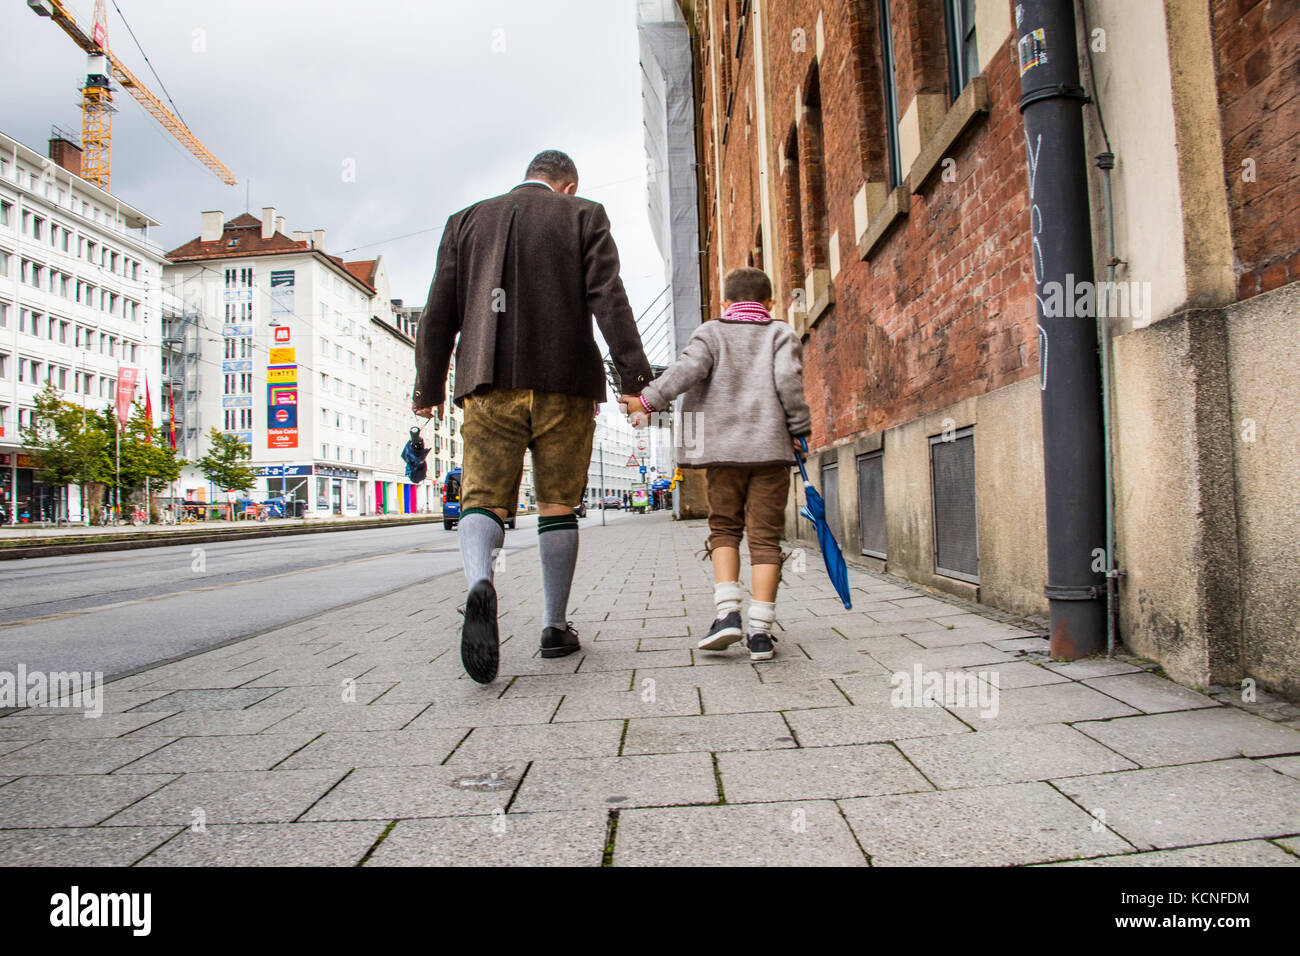 Father and son, Octoberfest, Munich, Germany - Stock Image